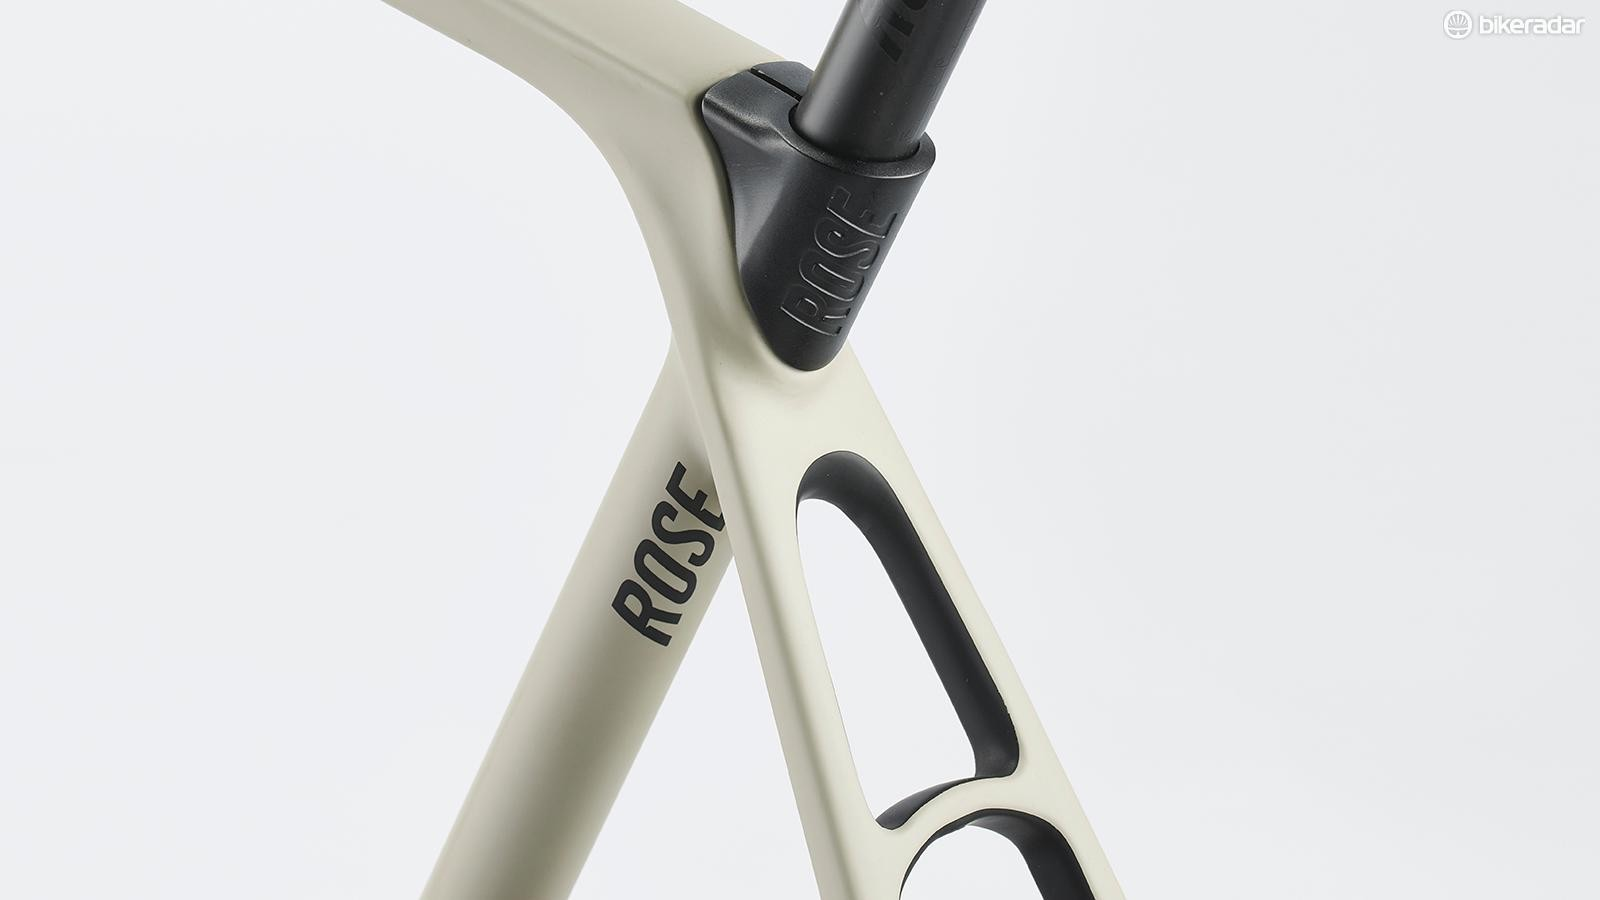 Rose claims the tapered seatstays will take 42mm tyres